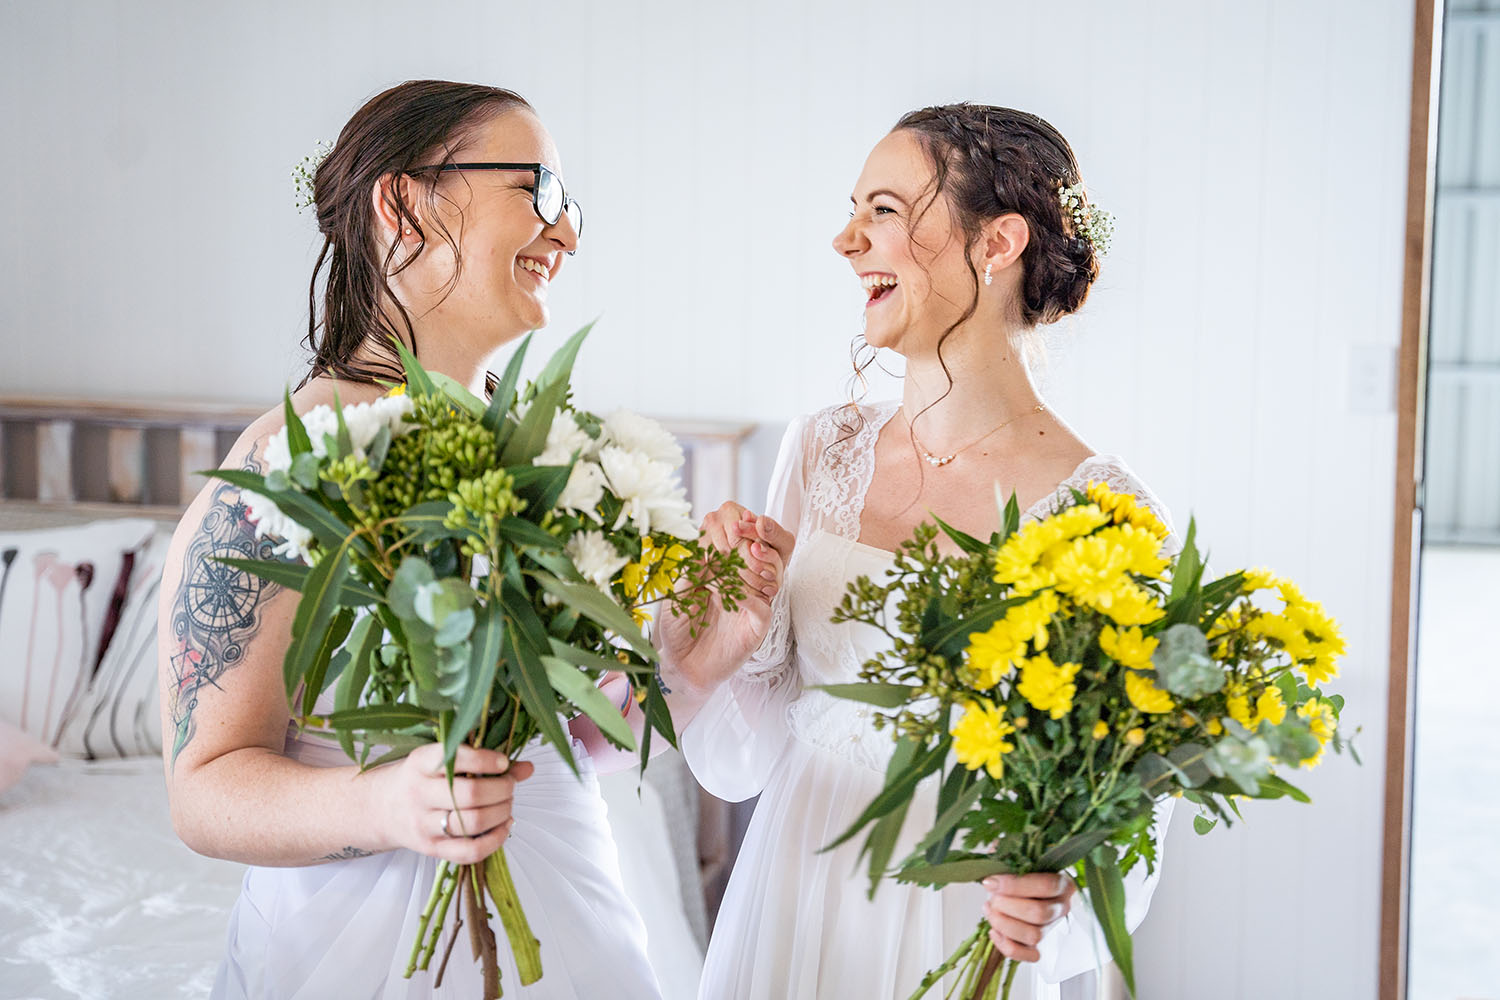 Wedding Photography - Brides with flowers